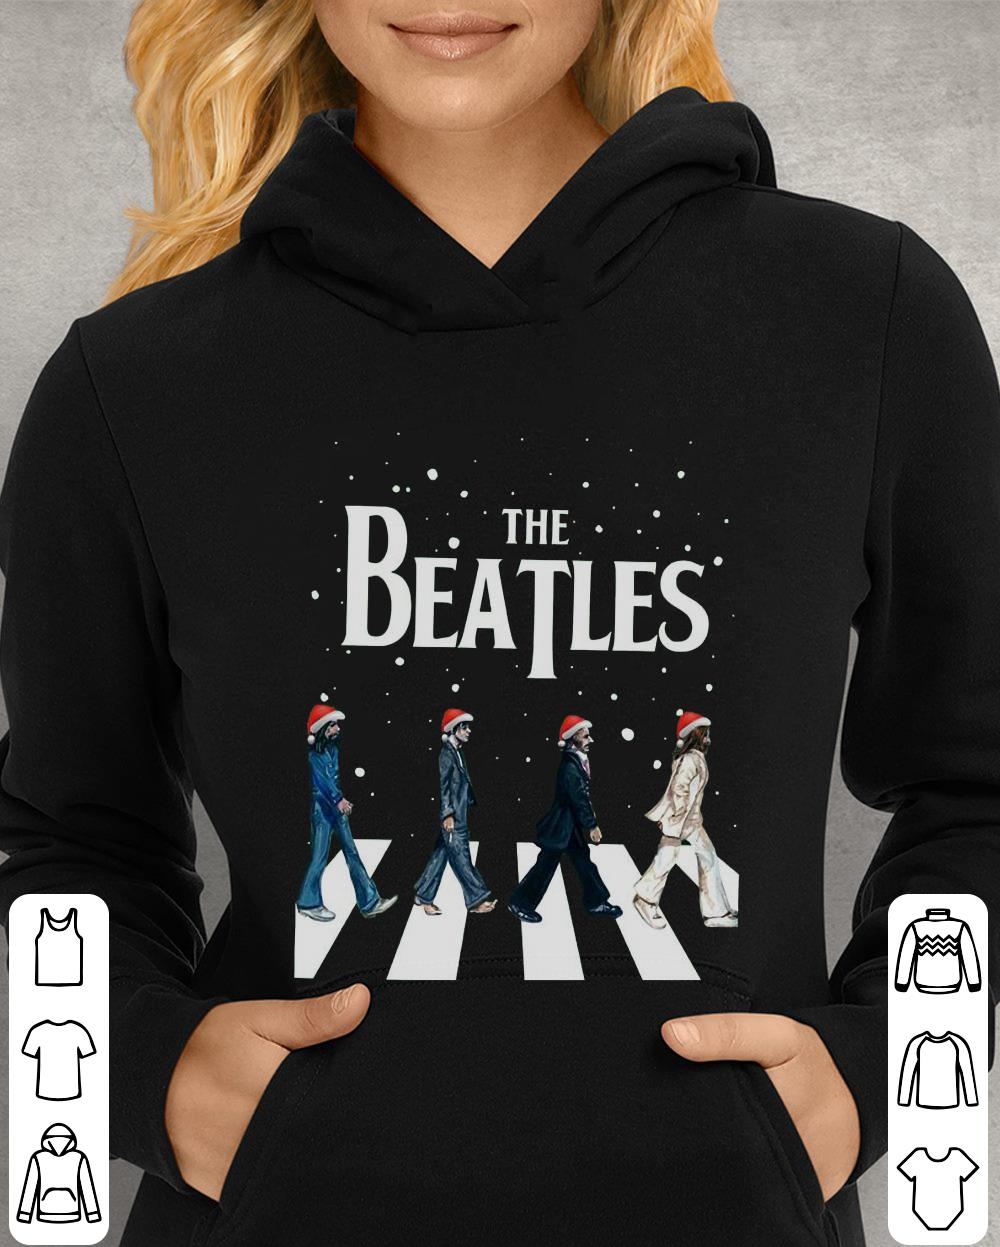 https://unicornshirts.net/images/2018/12/The-Beatles-Ugly-Christmas-Sweater-shirt_4.jpg